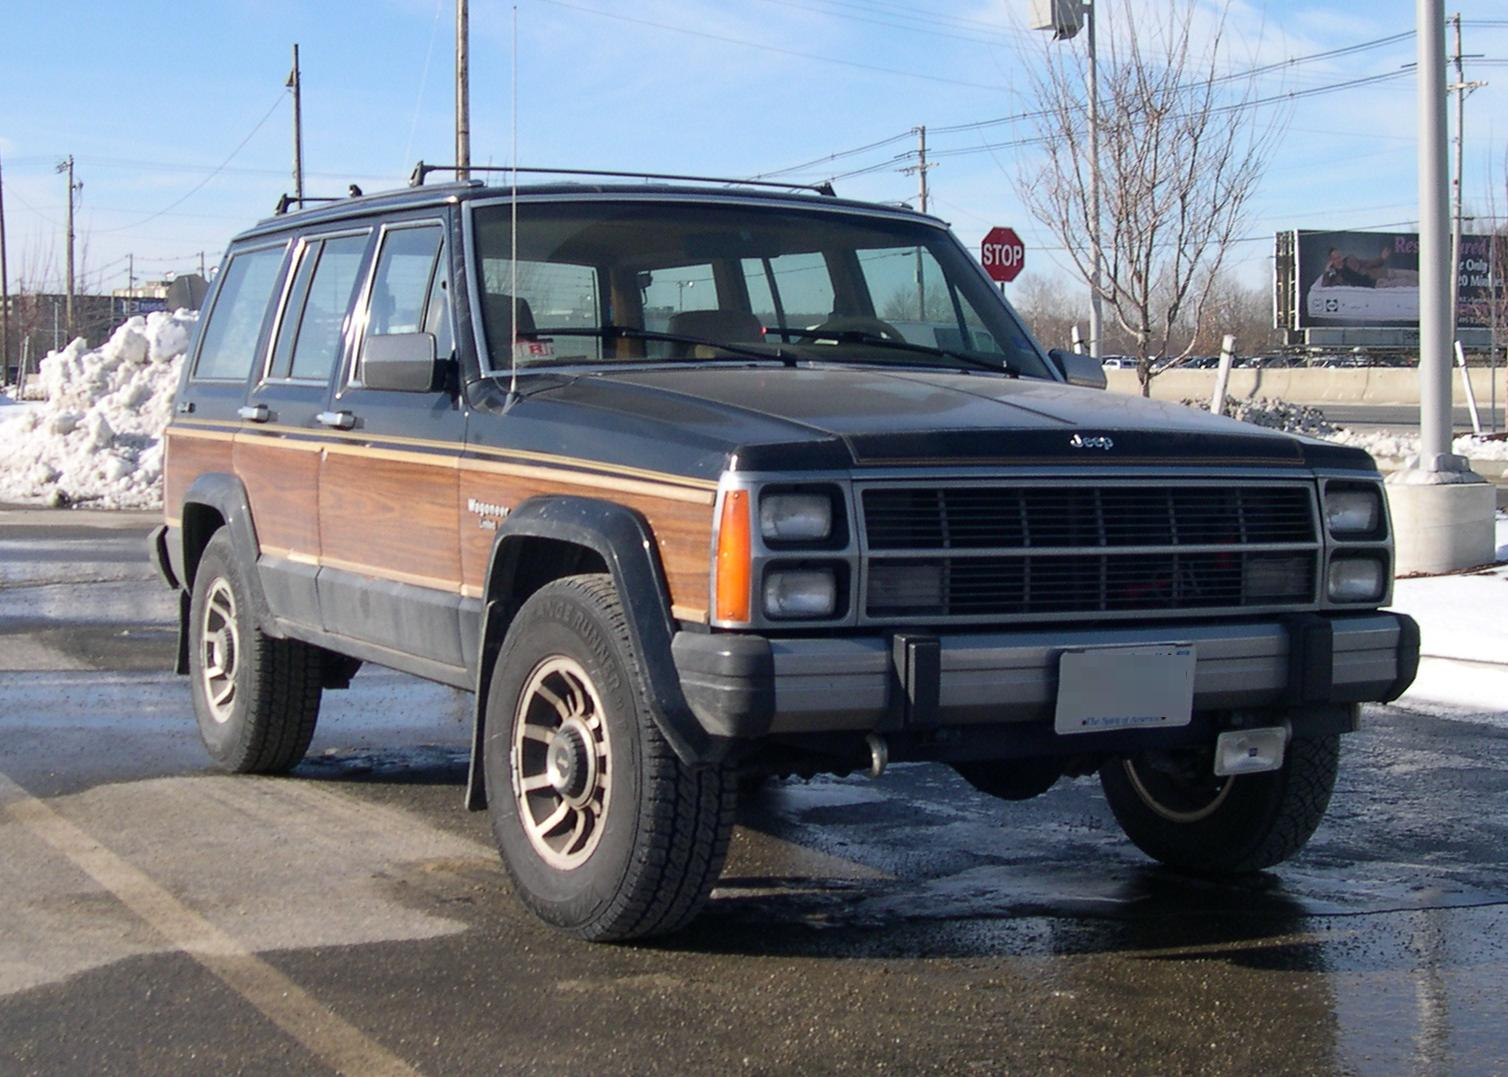 Nitro moreover 2004 Toyota 4Runner Pictures C3971 pi35963514 additionally Watch additionally 2016 Jeep Wrangler Unlimited Sport 44 also 1987 1989 Jeep. on 1989 jeep grand cherokee